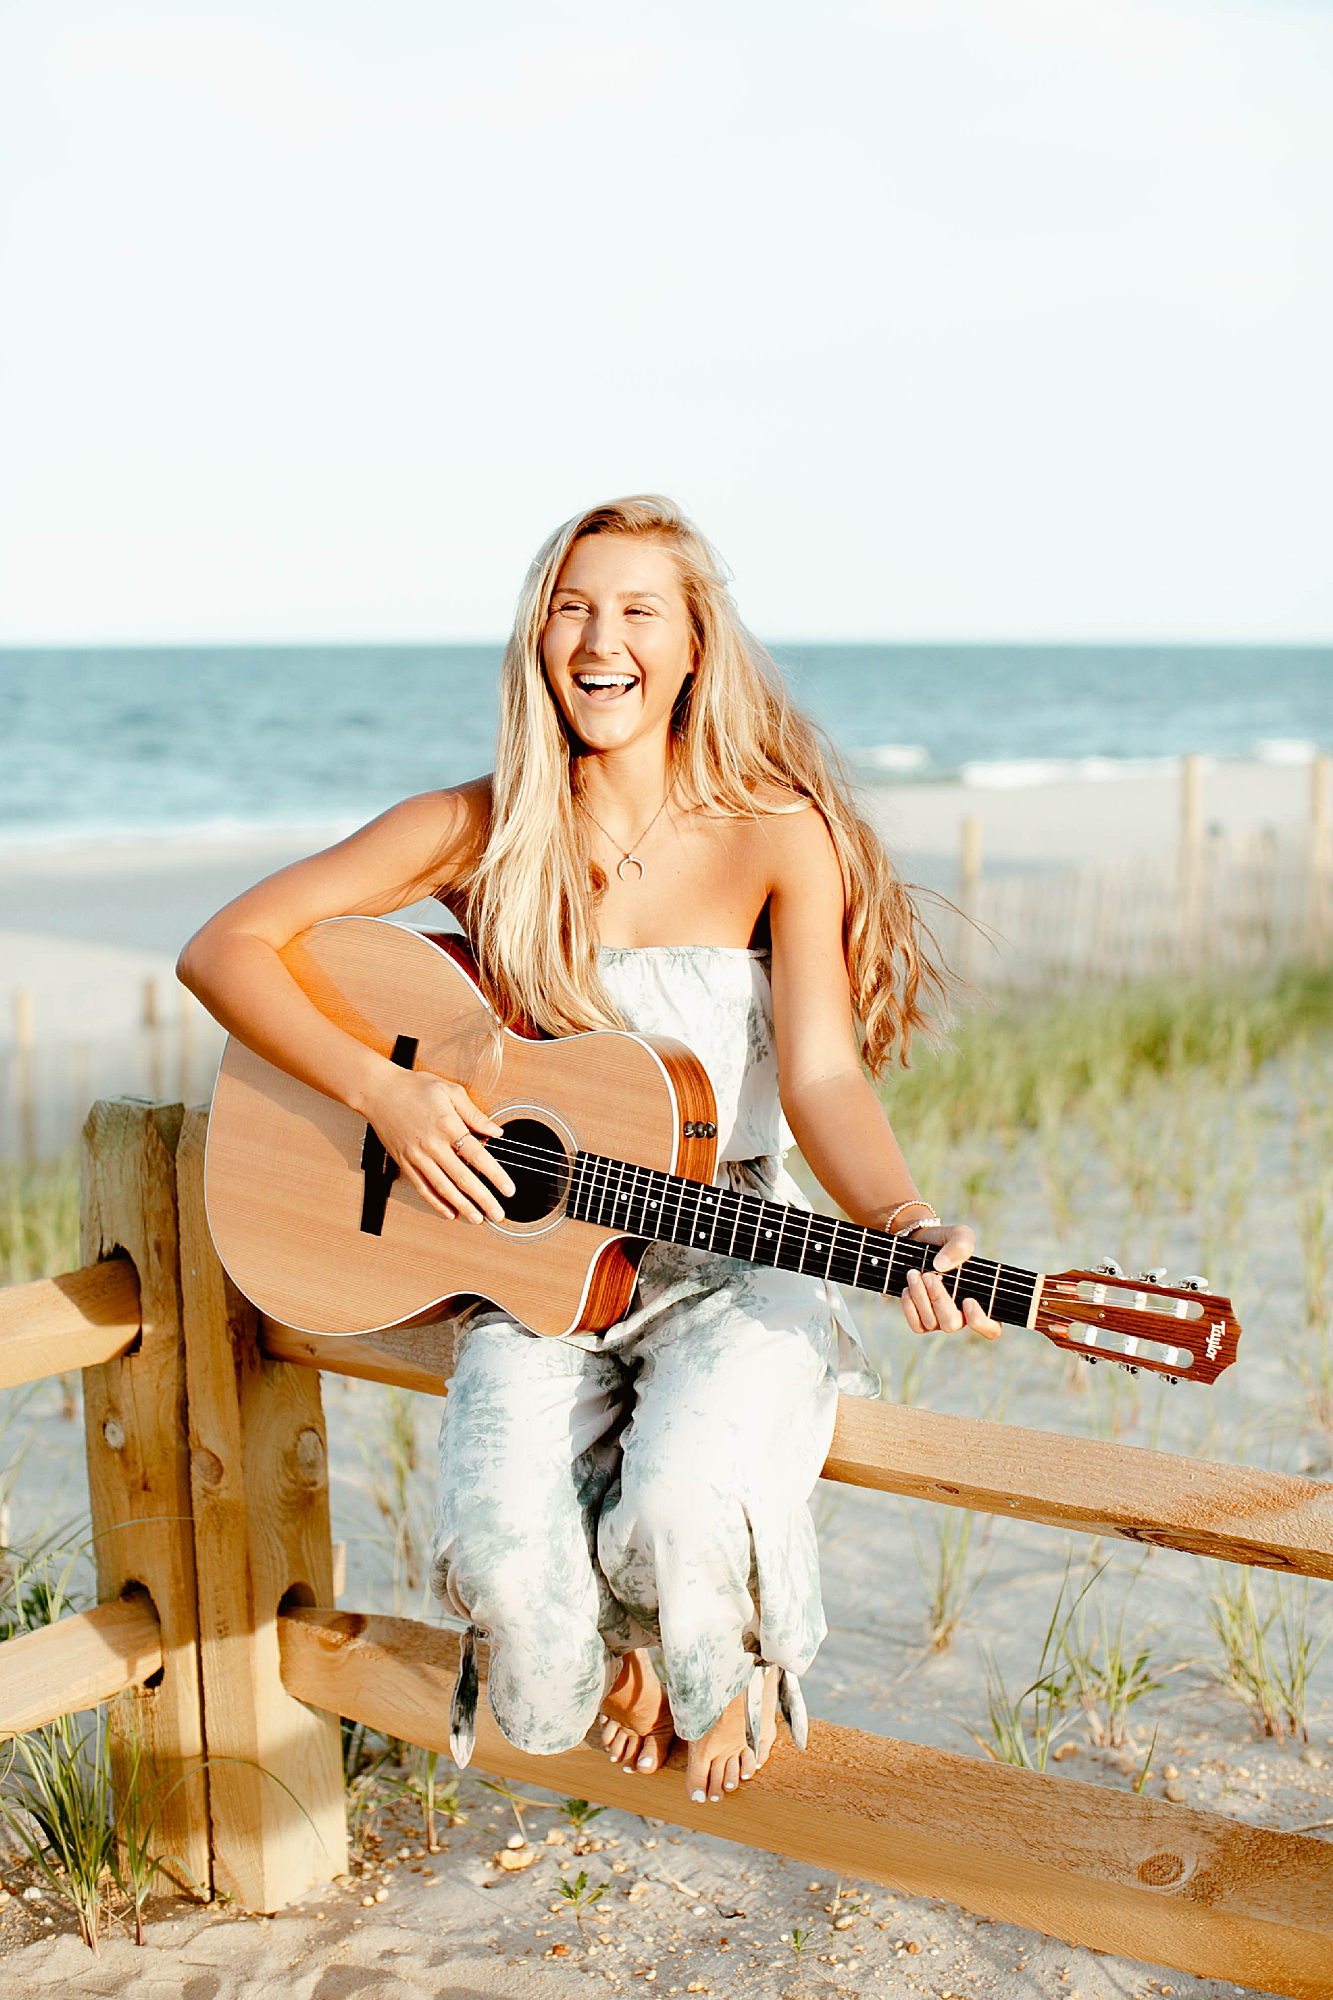 Natural and Bright Seaside Park New Jersey Boho Lifestlyle Beach Portrait Photography by Kelee Bovelle_0019.jpg